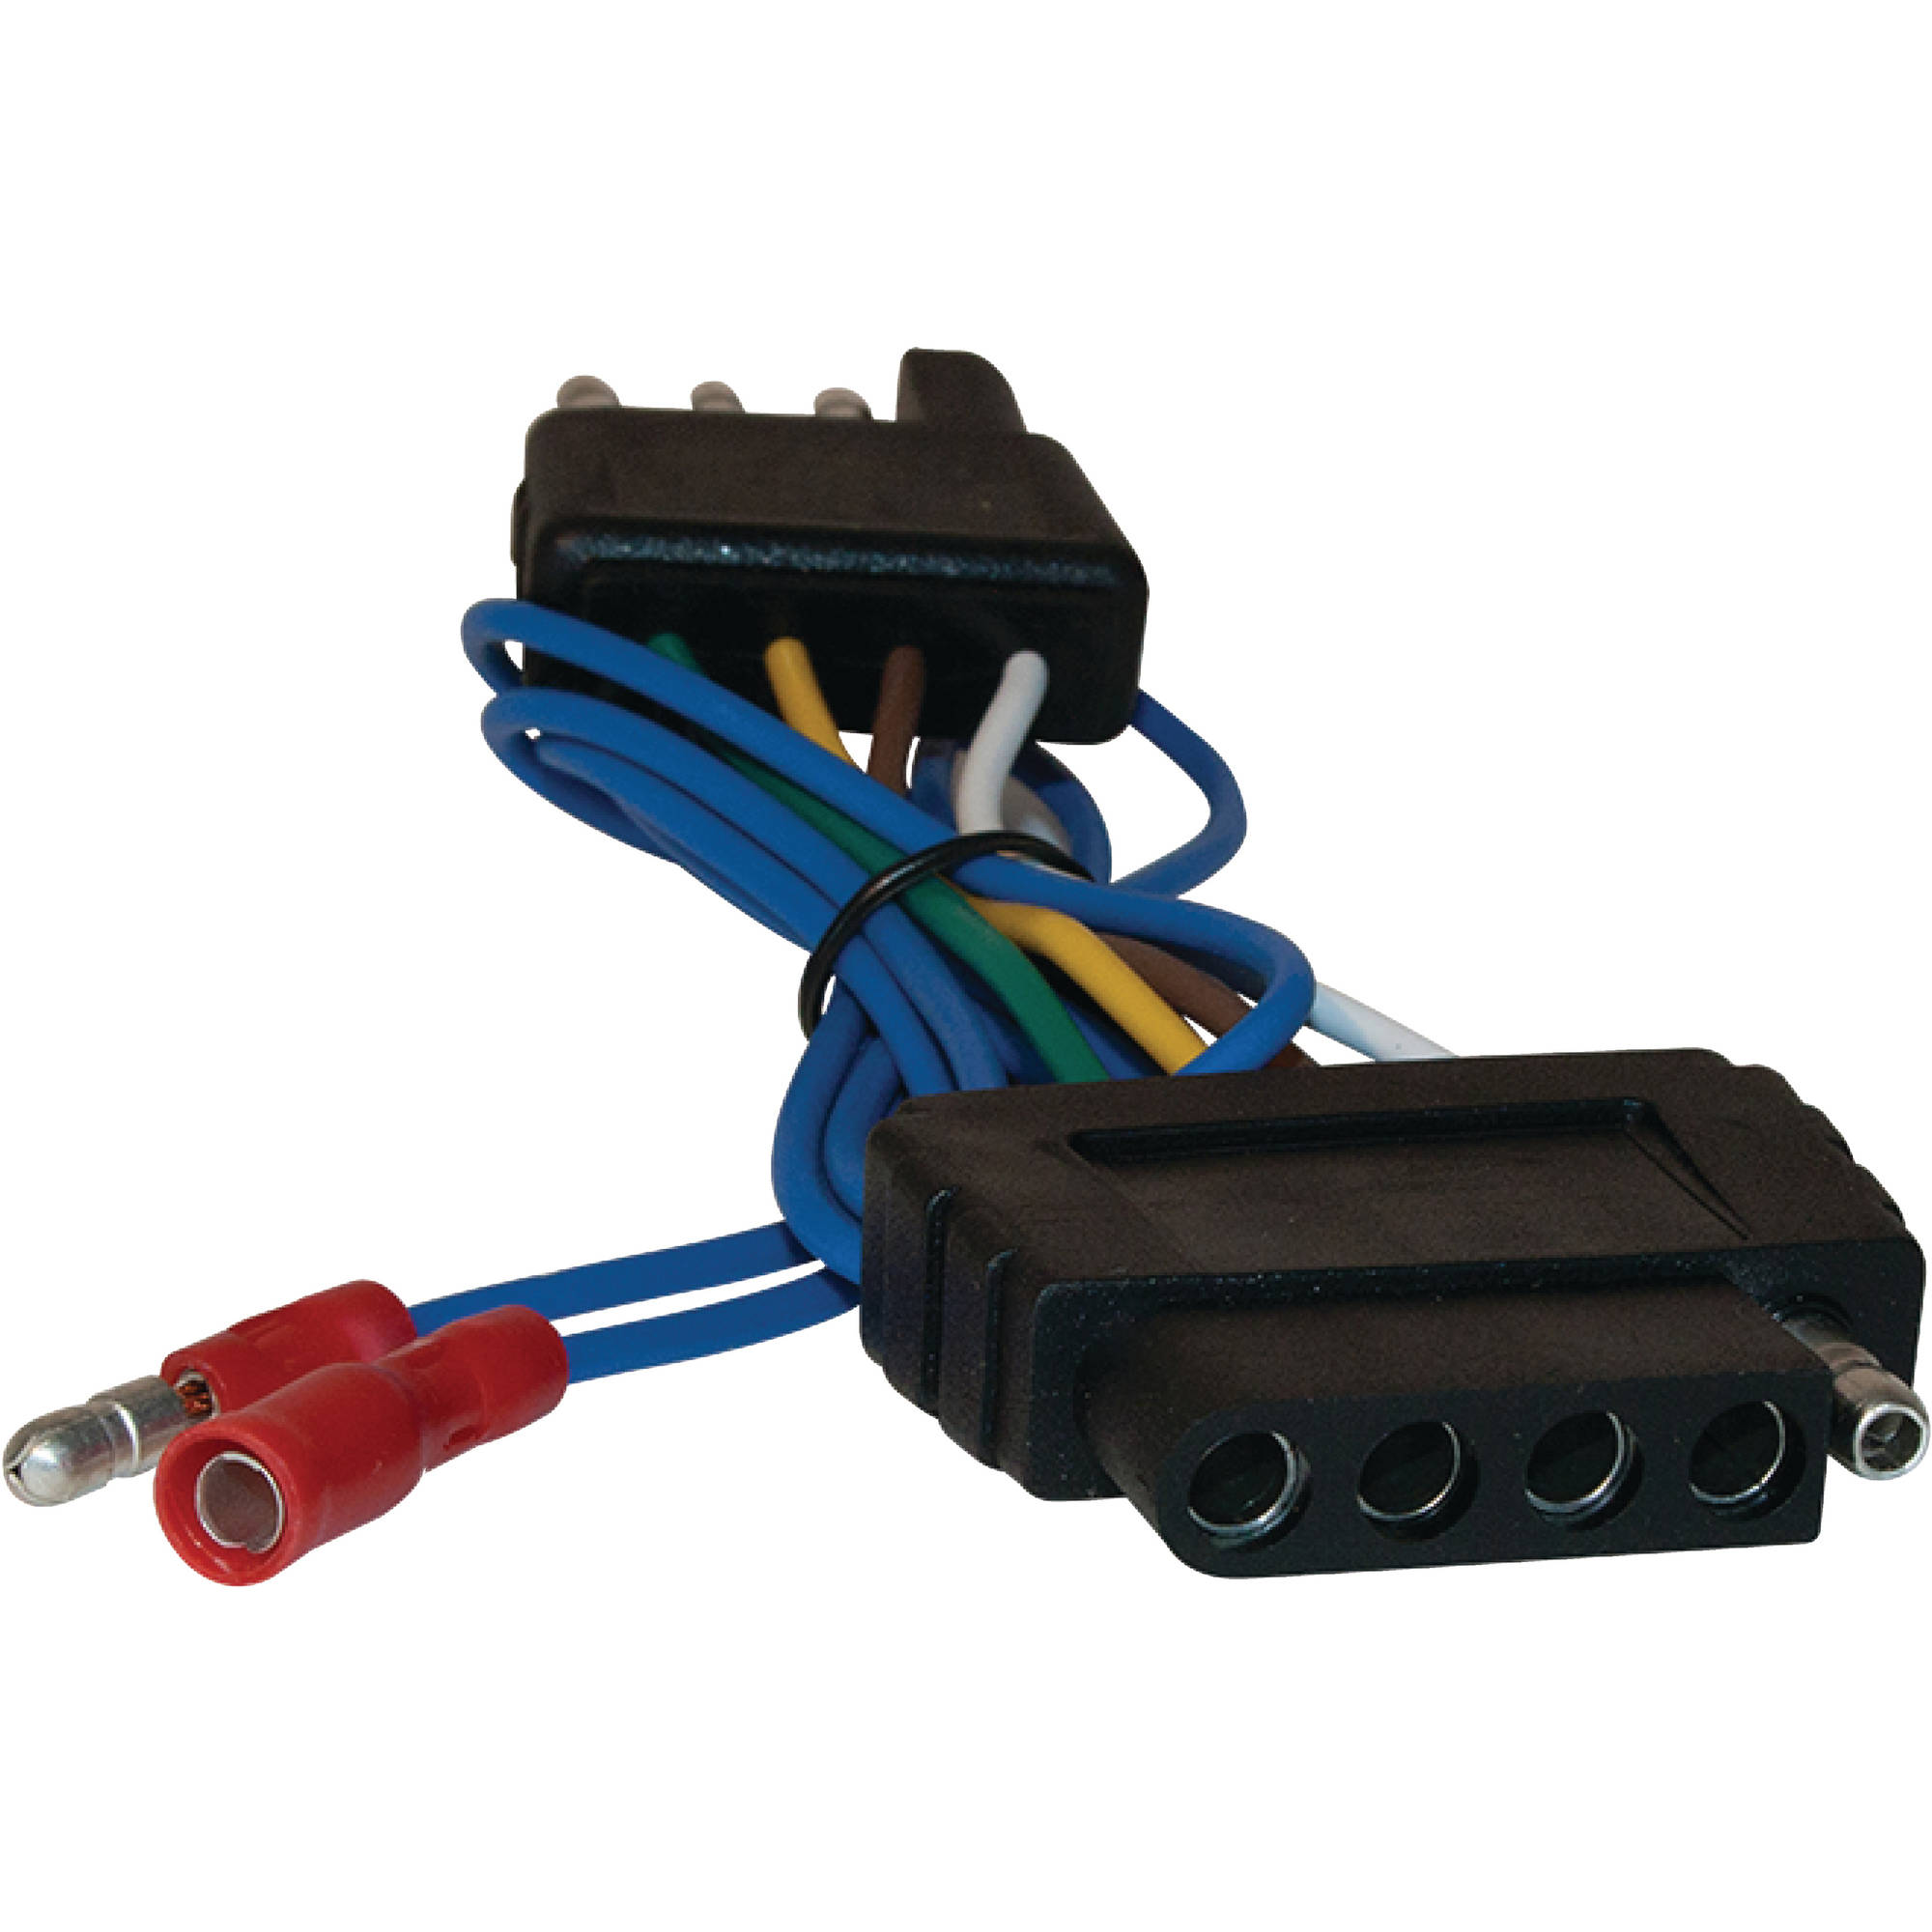 Walmart Trailer Wiring Harness Harazat Tshnami Episode 449 Anons Lights Hitches From Reese And Most Light T Connectors Electric Brake Controllers 5th Wheel Gooseneck 7 Pin Plug